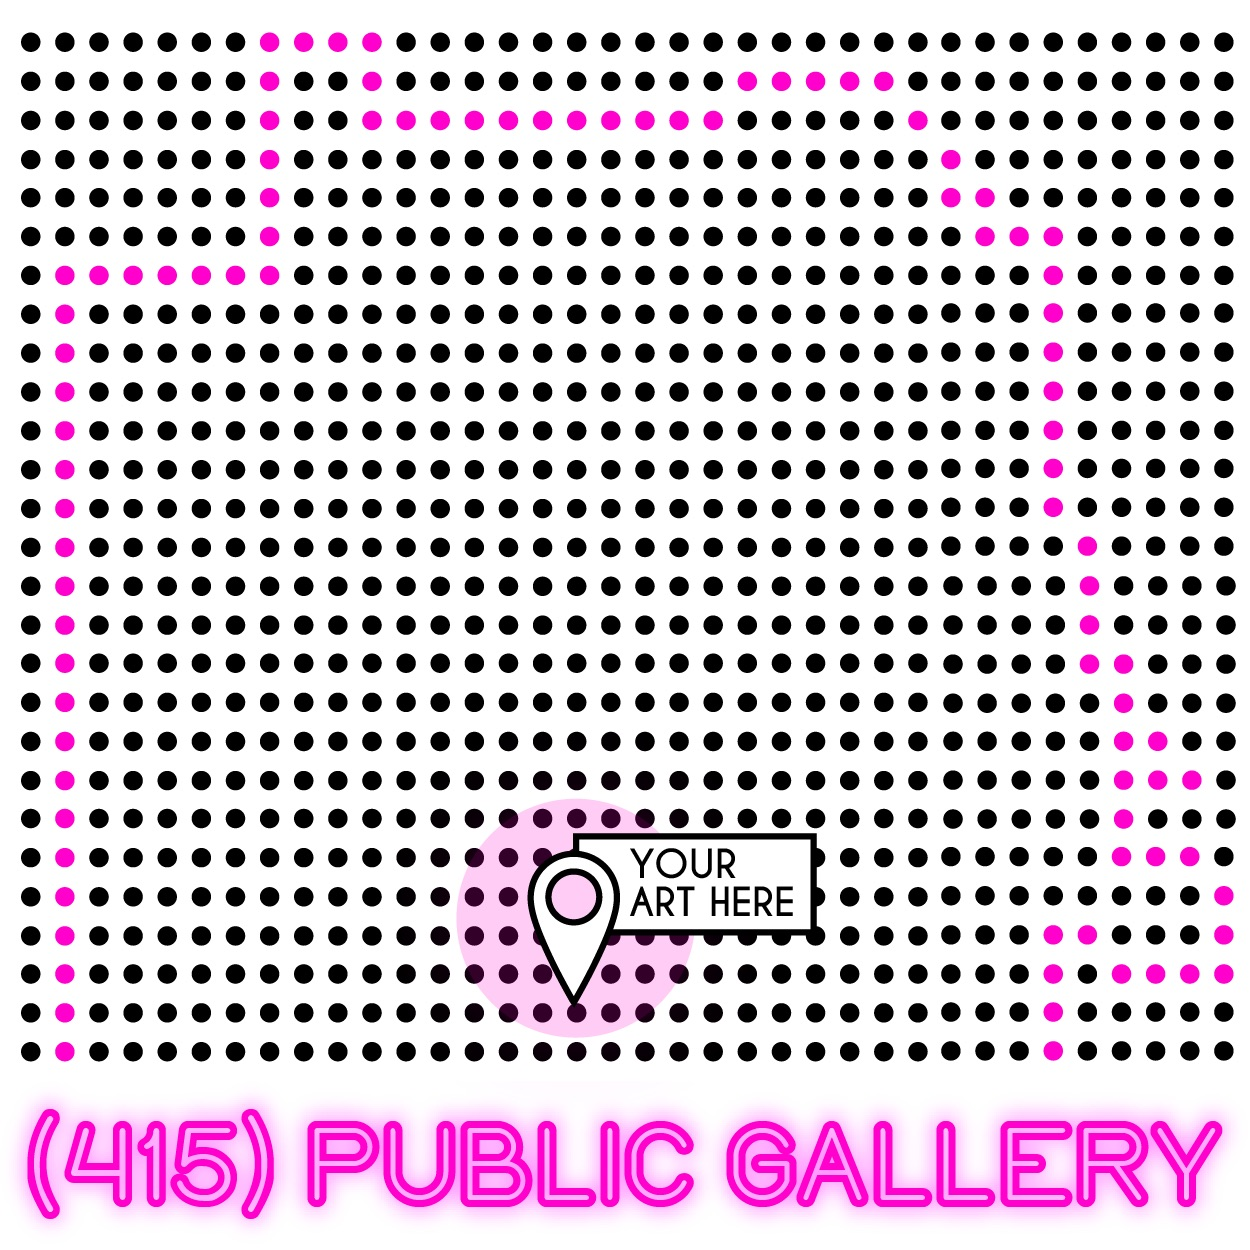 415 public gallery-01.png